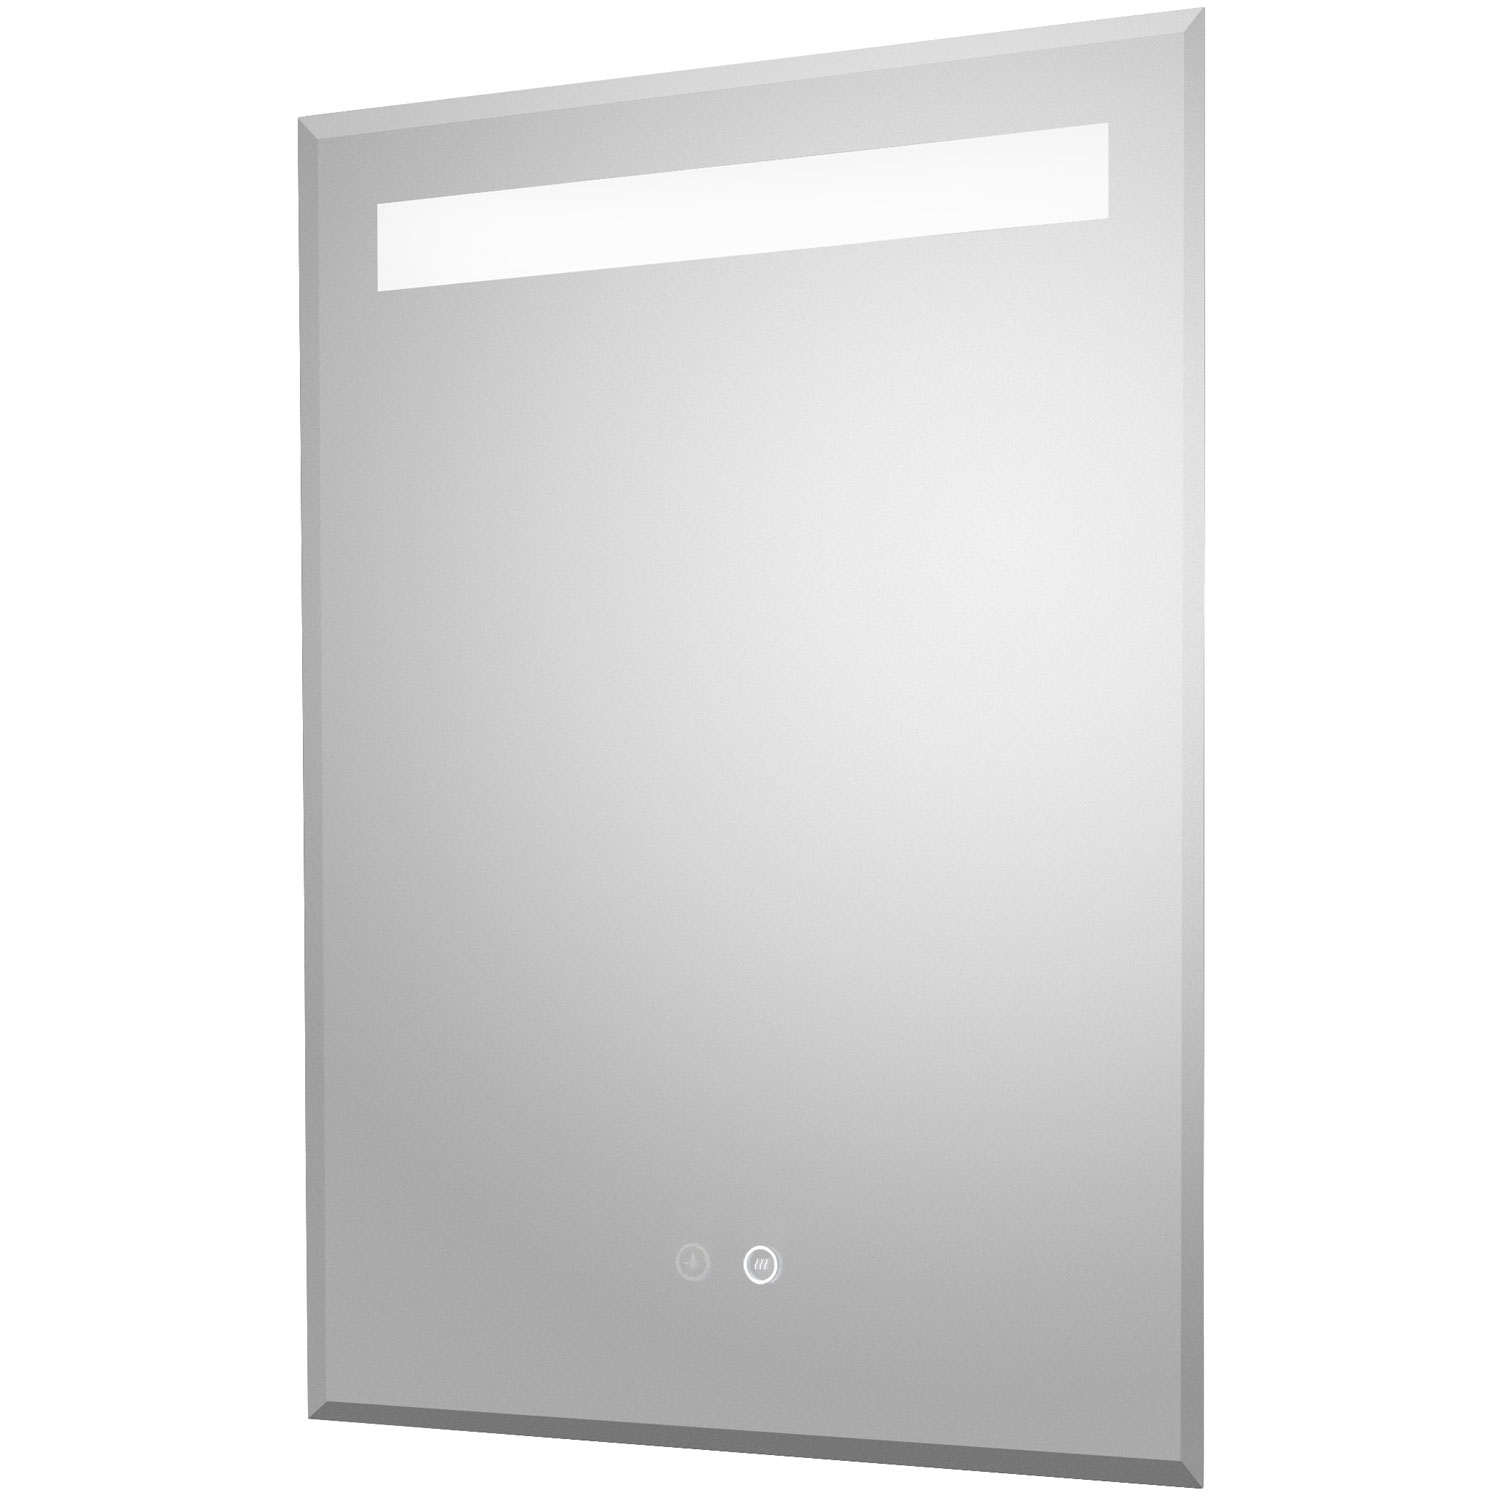 Hudson Reed Vizor Bathroom Mirror 700mm H x 500mm W